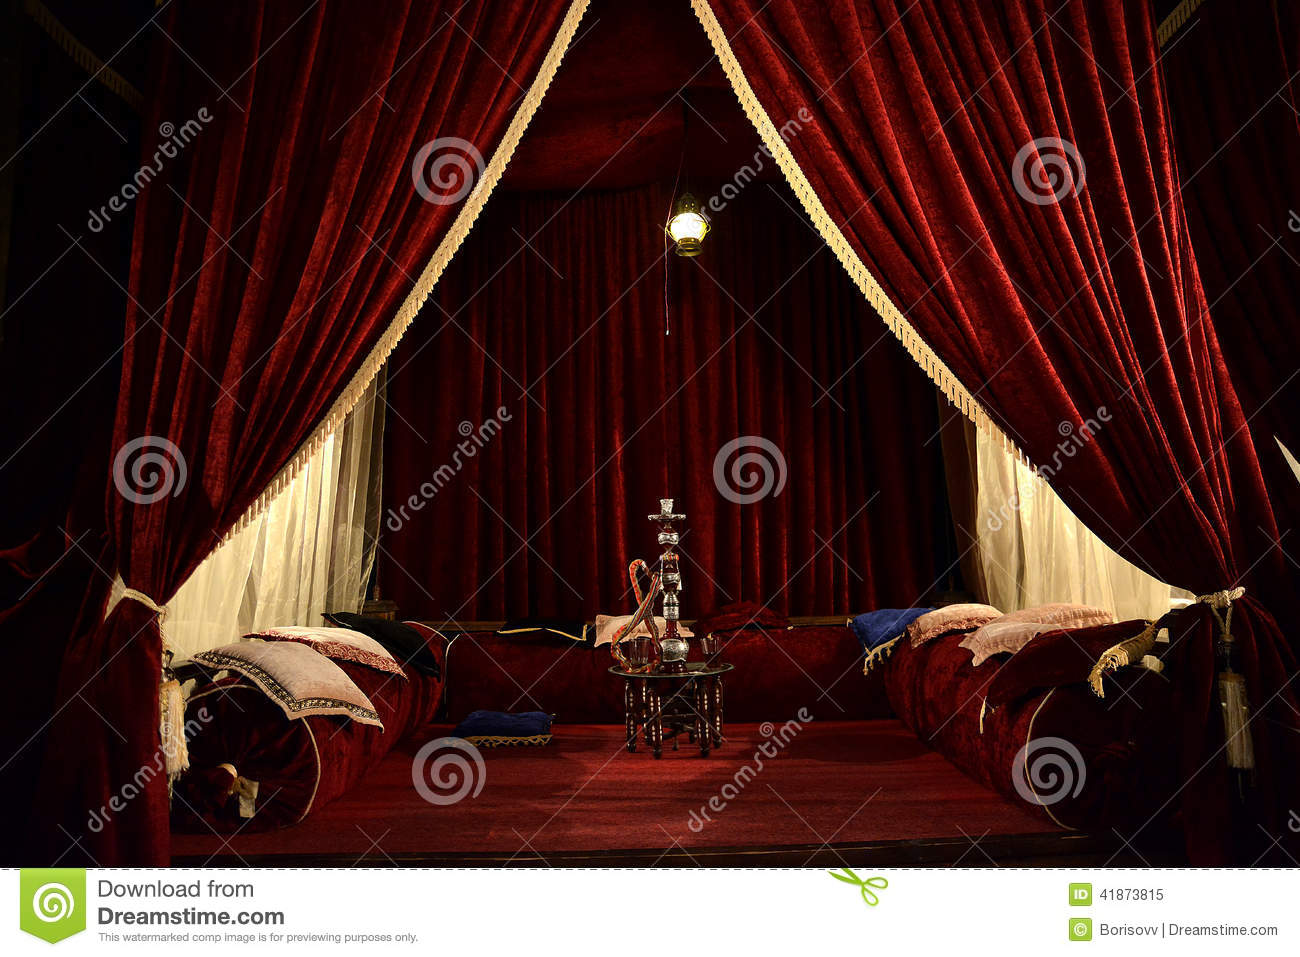 Hookah Room In Red Stock Image Image Of Curtain Enjoyment 41873815